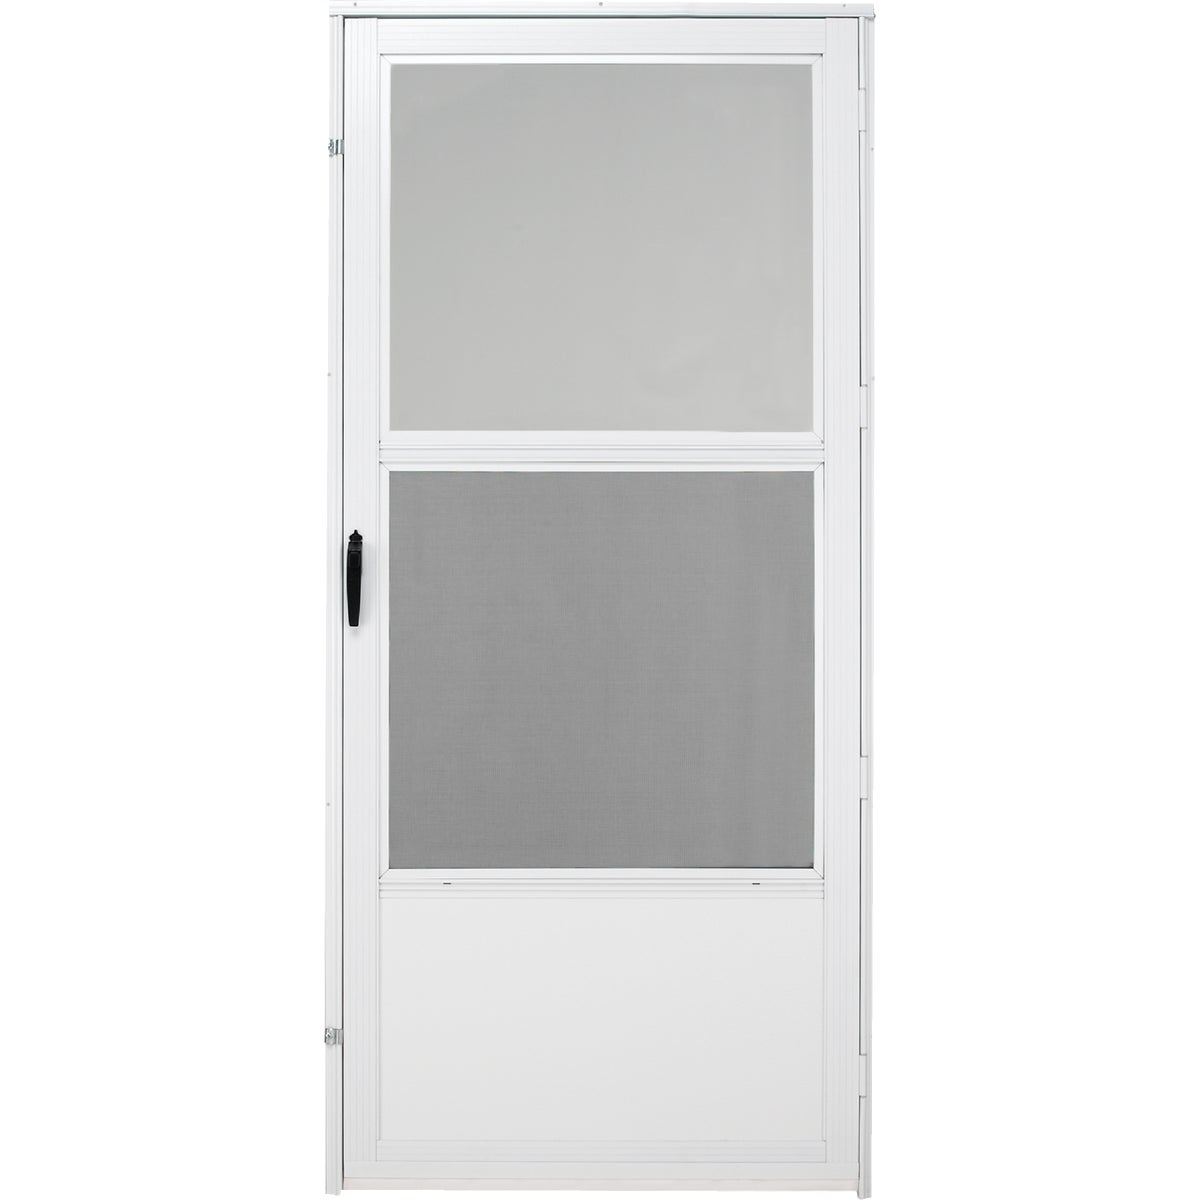 266 3068 RH WHT DOOR - F06160 by Croft Llc